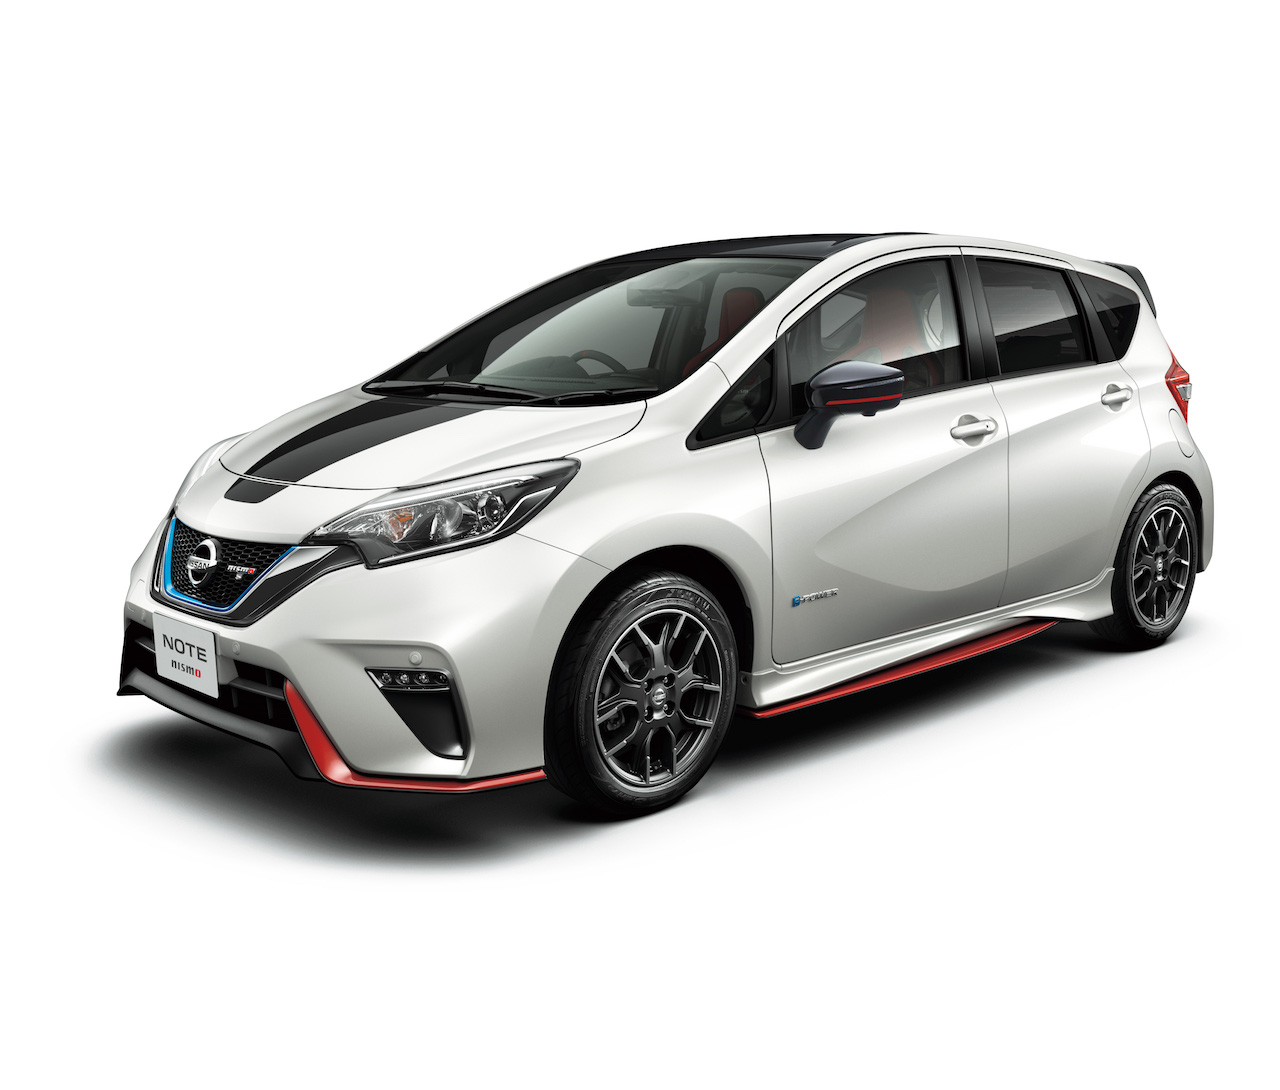 nissan-nismo-note-black-edition-111.jpg